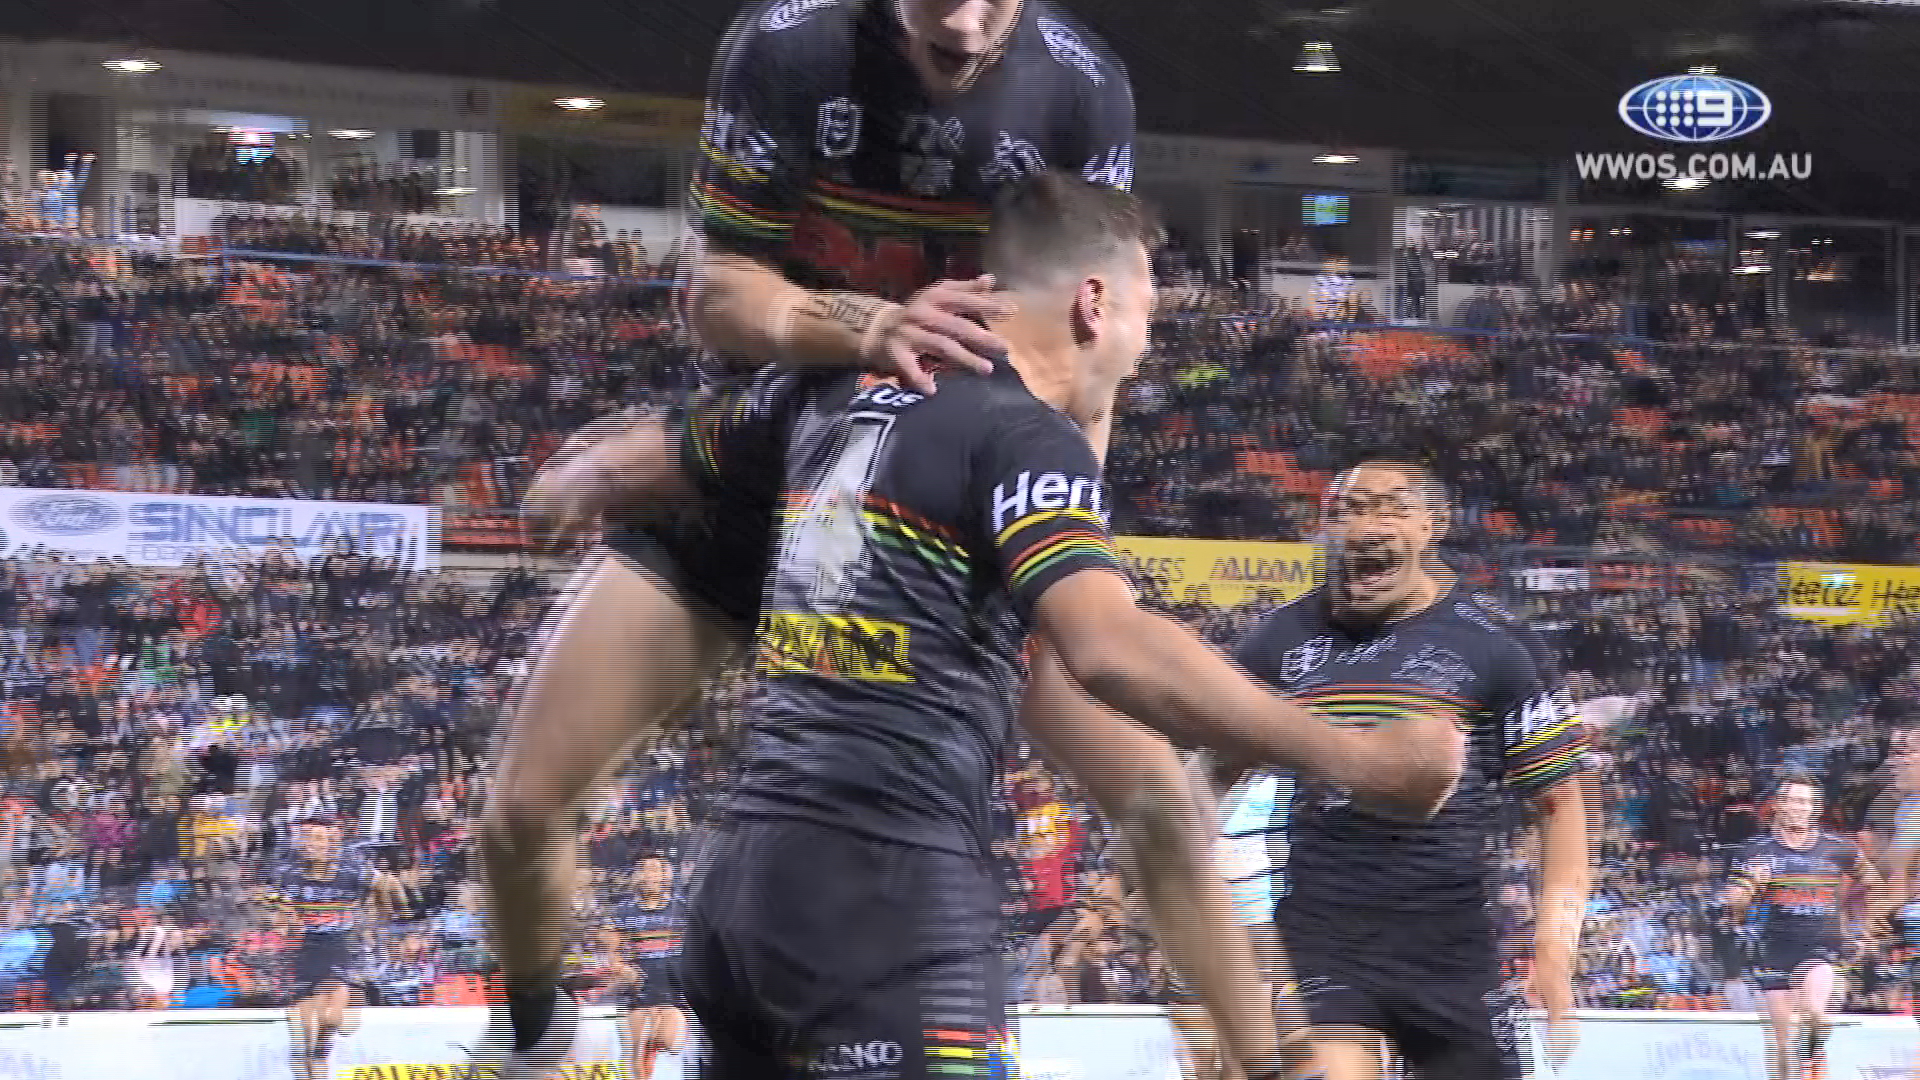 Watch Brad Fitler's 2020 Season Preview for the Penrith Panthers.